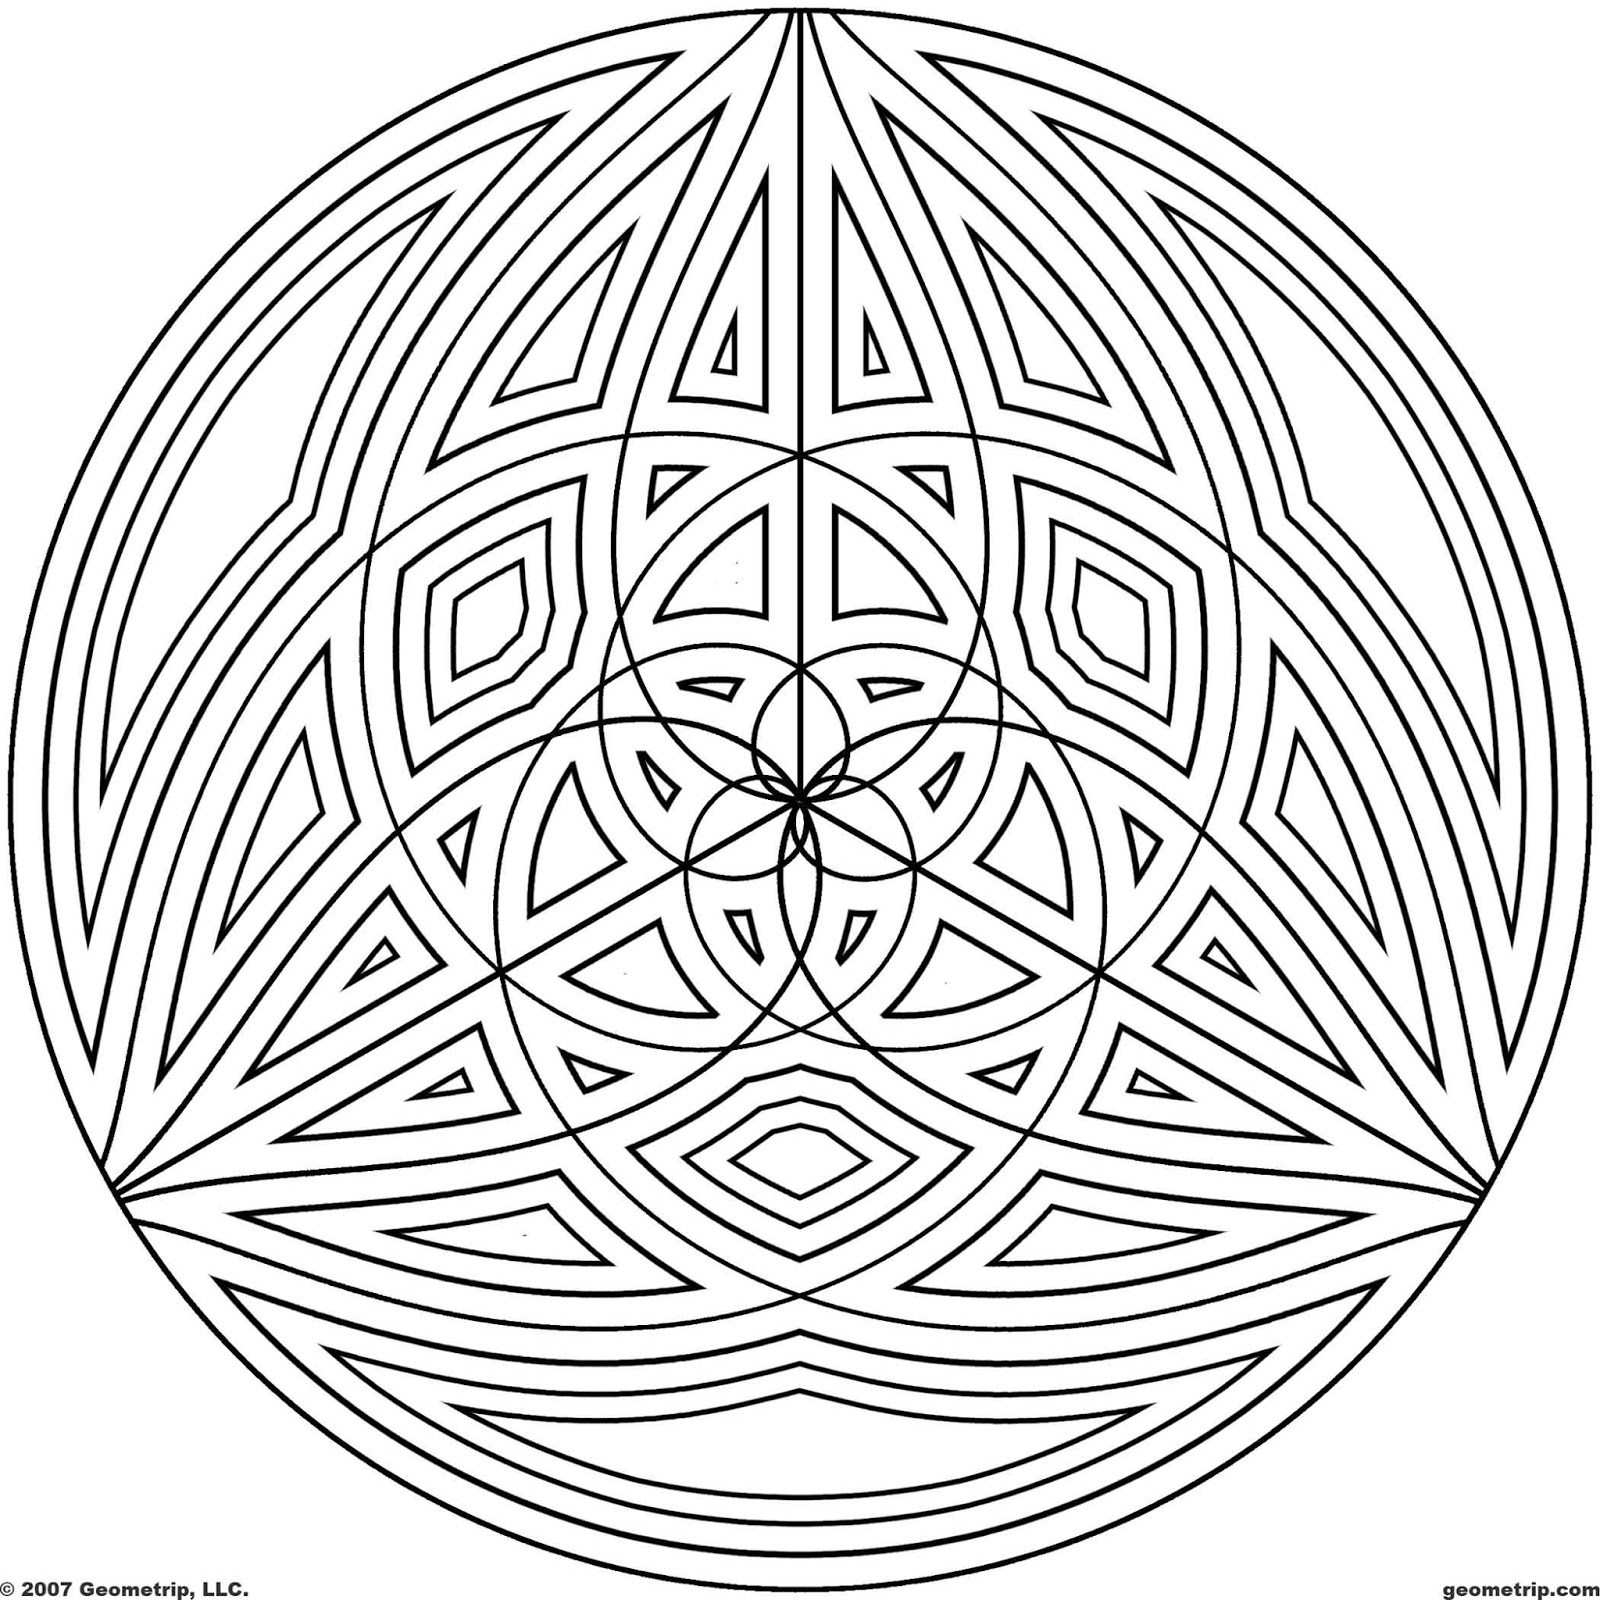 printable designs to color free printable geometric coloring pages for adults printable to color designs